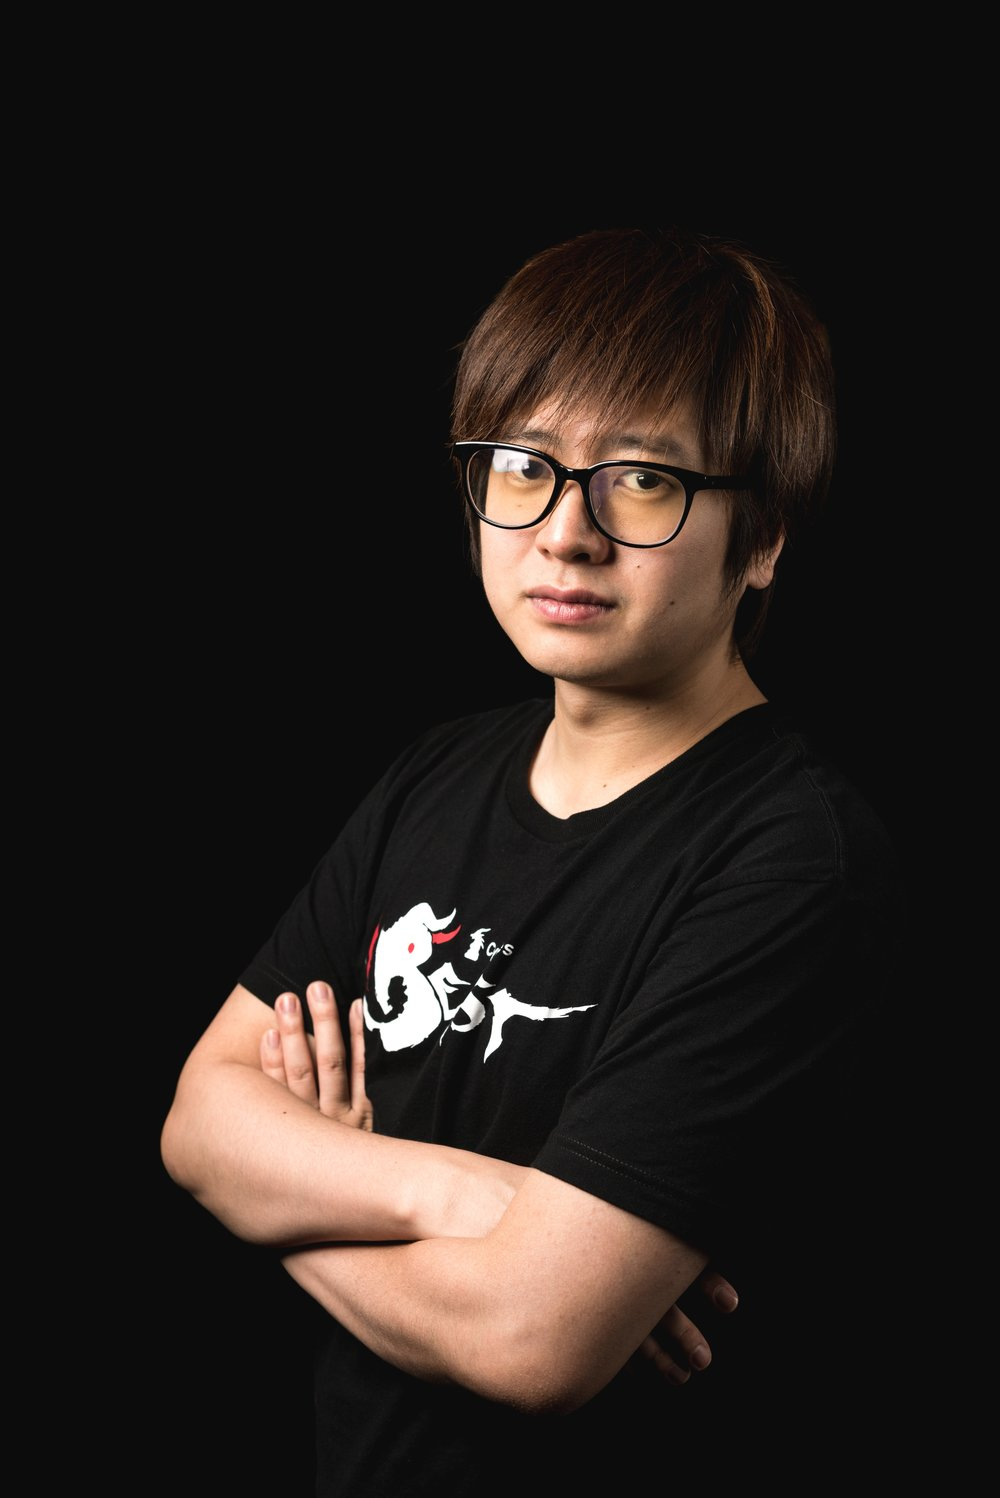 "Fuudo - Fuudo made his astonishing international debut at EVO 2011 winning the first place with Street Fighter IV. Ever since, he has consistently accomplished remarkable achievements, such as the 3rdplace at EVO 2014, and the second place at EVO 2016, just to name a few. He boasts a precise but aggressive play style and intellectual approach, and is widely regarded as the world's best R. Mika player in Street Fighter V.Fuudo is also a frequent collaborator on ""Daigo the BeasTV"" channel and recognized as the irreplaceable star on the show.Twitter @TheFuudoFacebook @TheFuudoInstagram @TheFuudo"